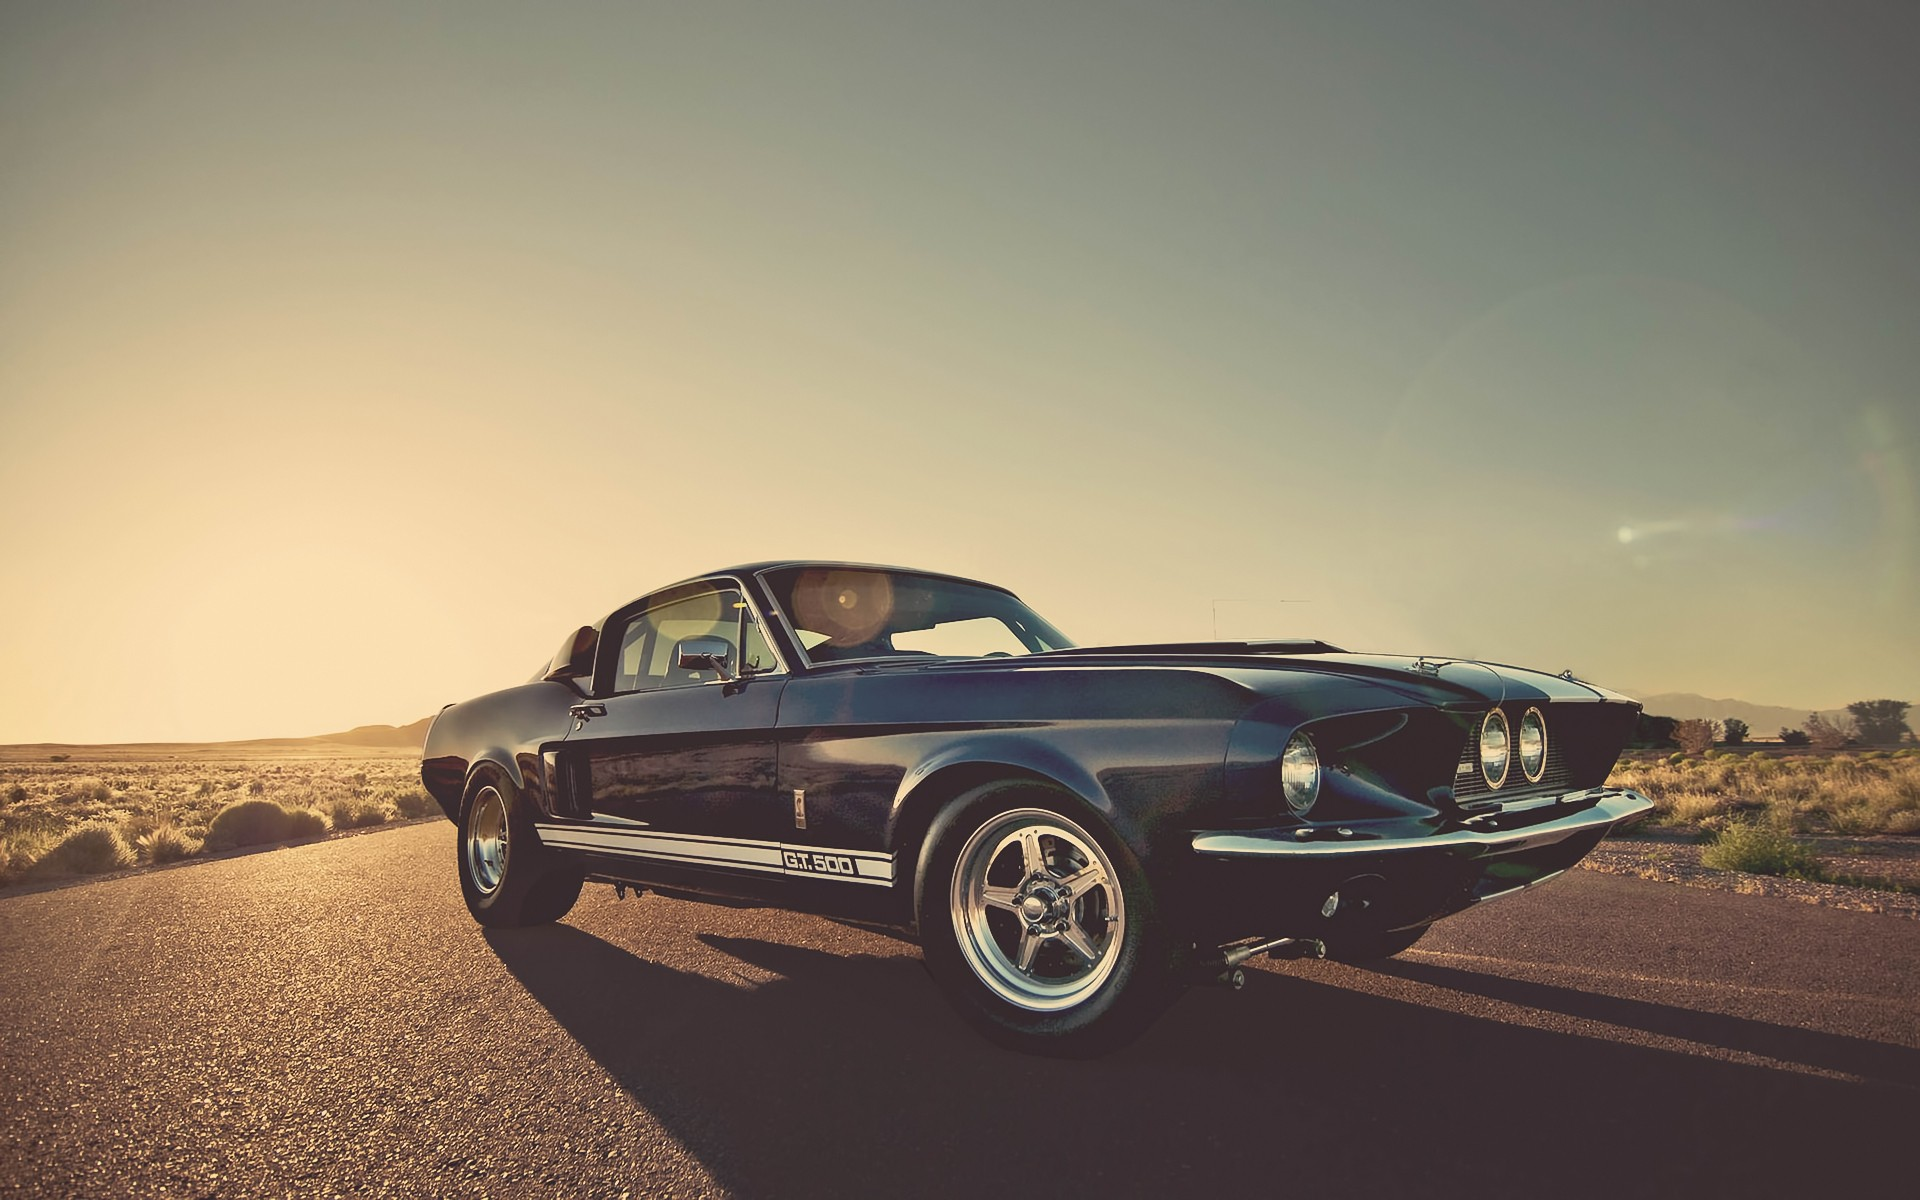 Pack De Wallpaper De Carros Full Hd: » Wallpapers HD [Autos, Coches]